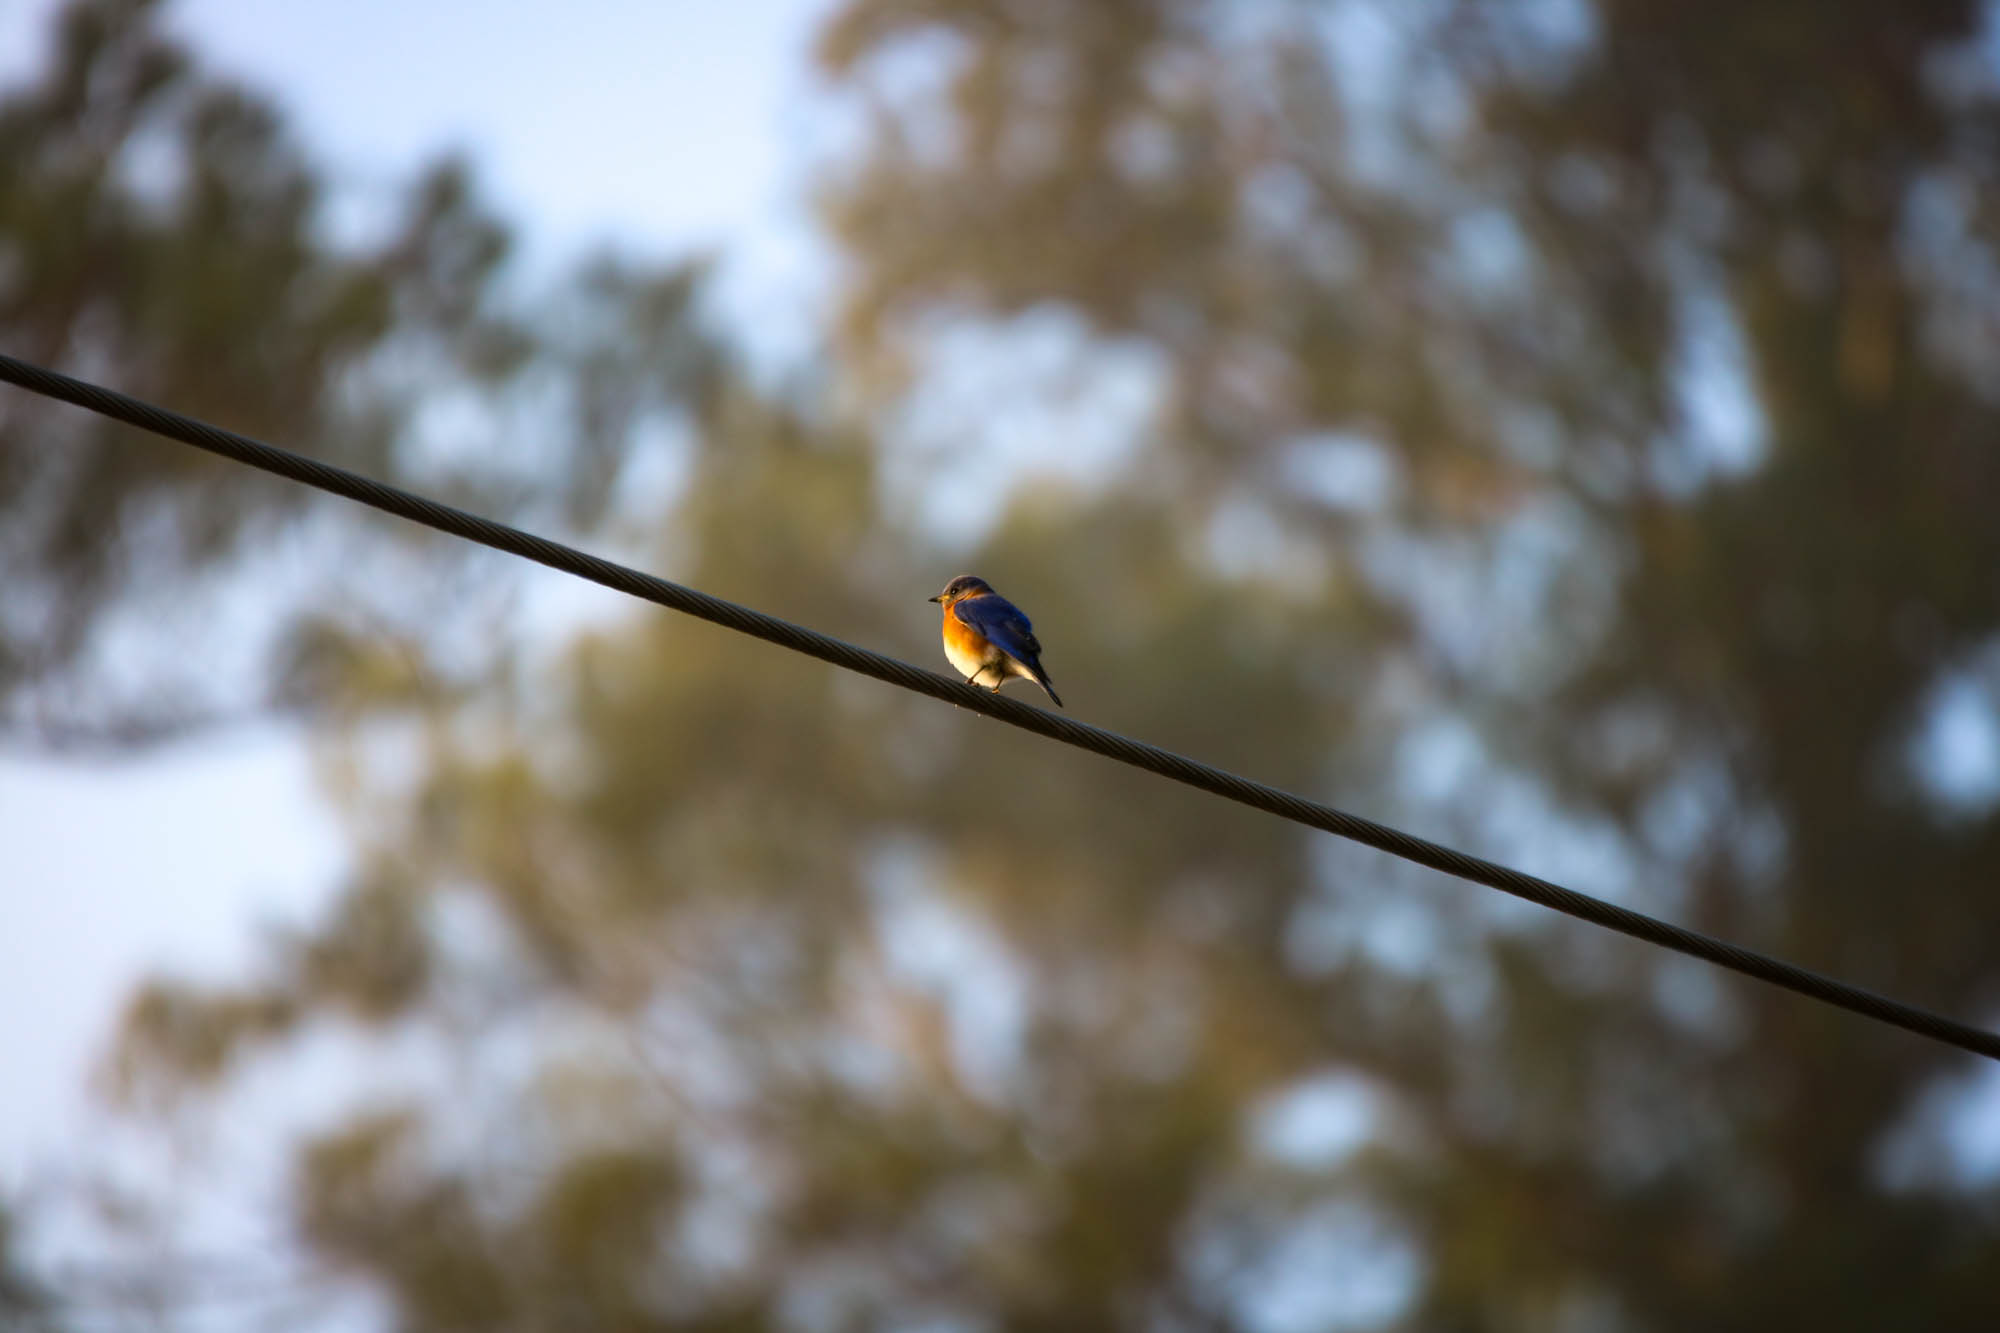 Bluebird perched on an electrical wire just above a nesting spot.